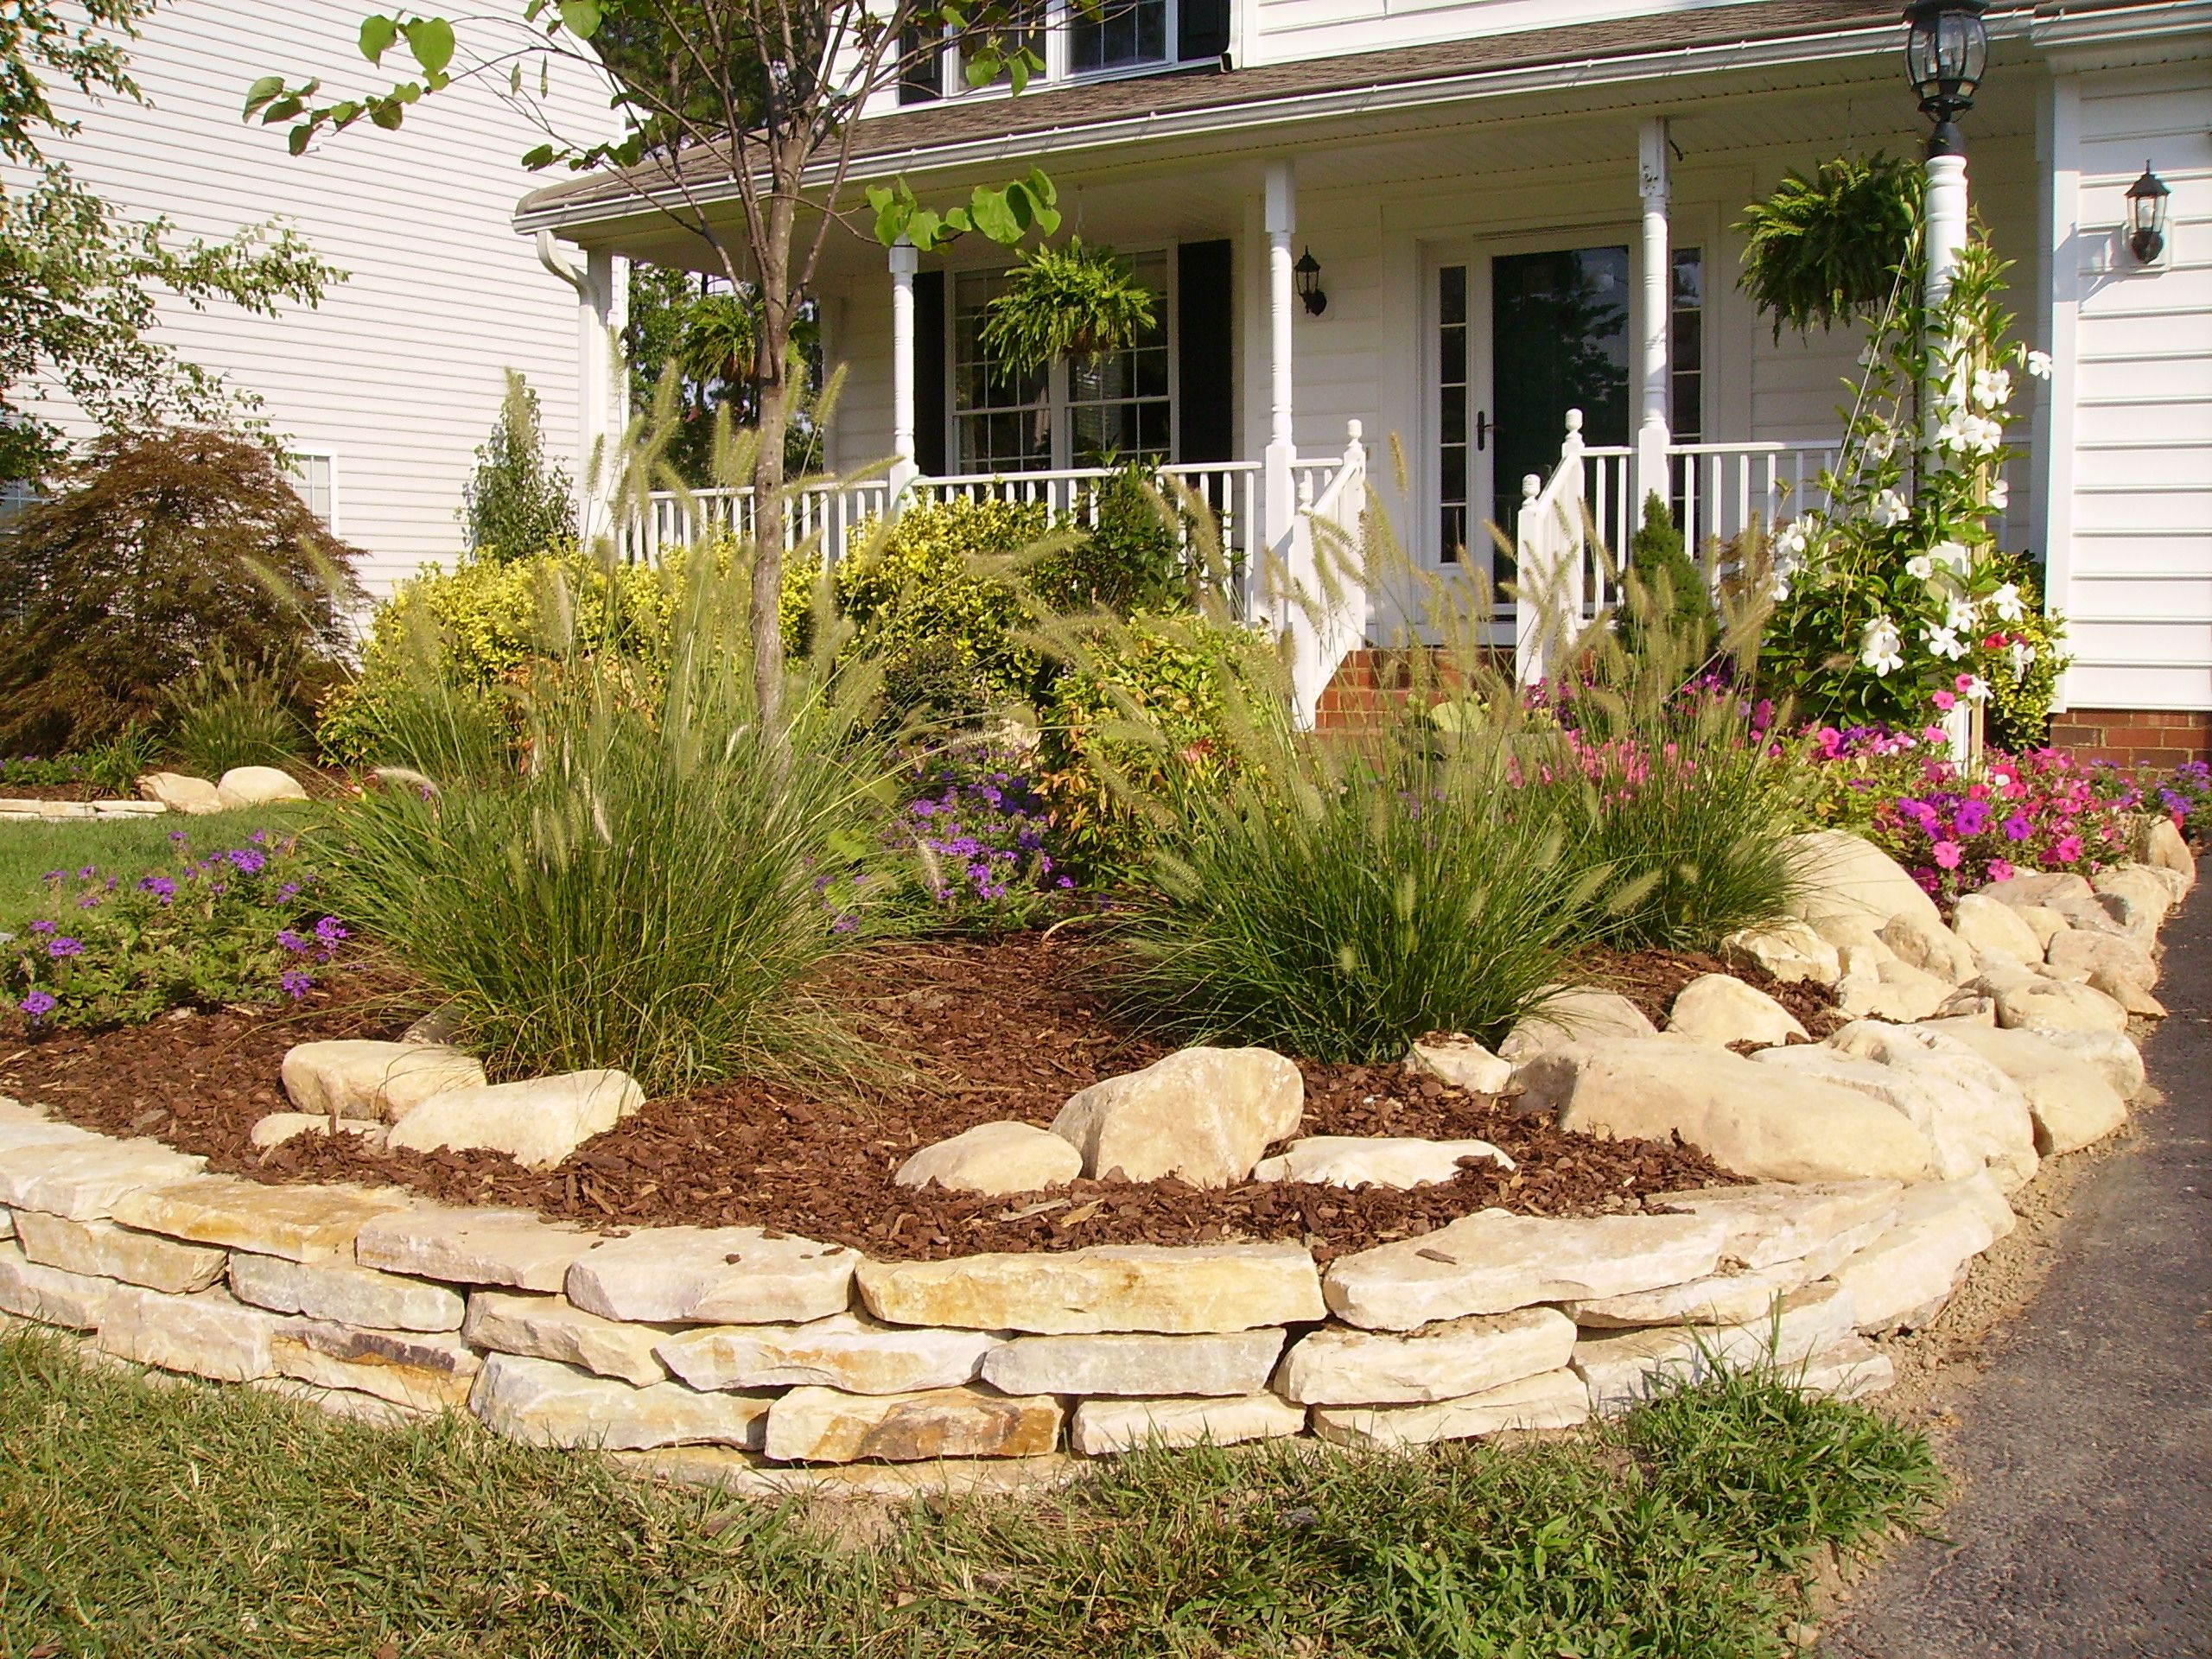 Awesome In This Photo, The Stacked Stone Is Edging The Flowerbed And Creating  Depth. When